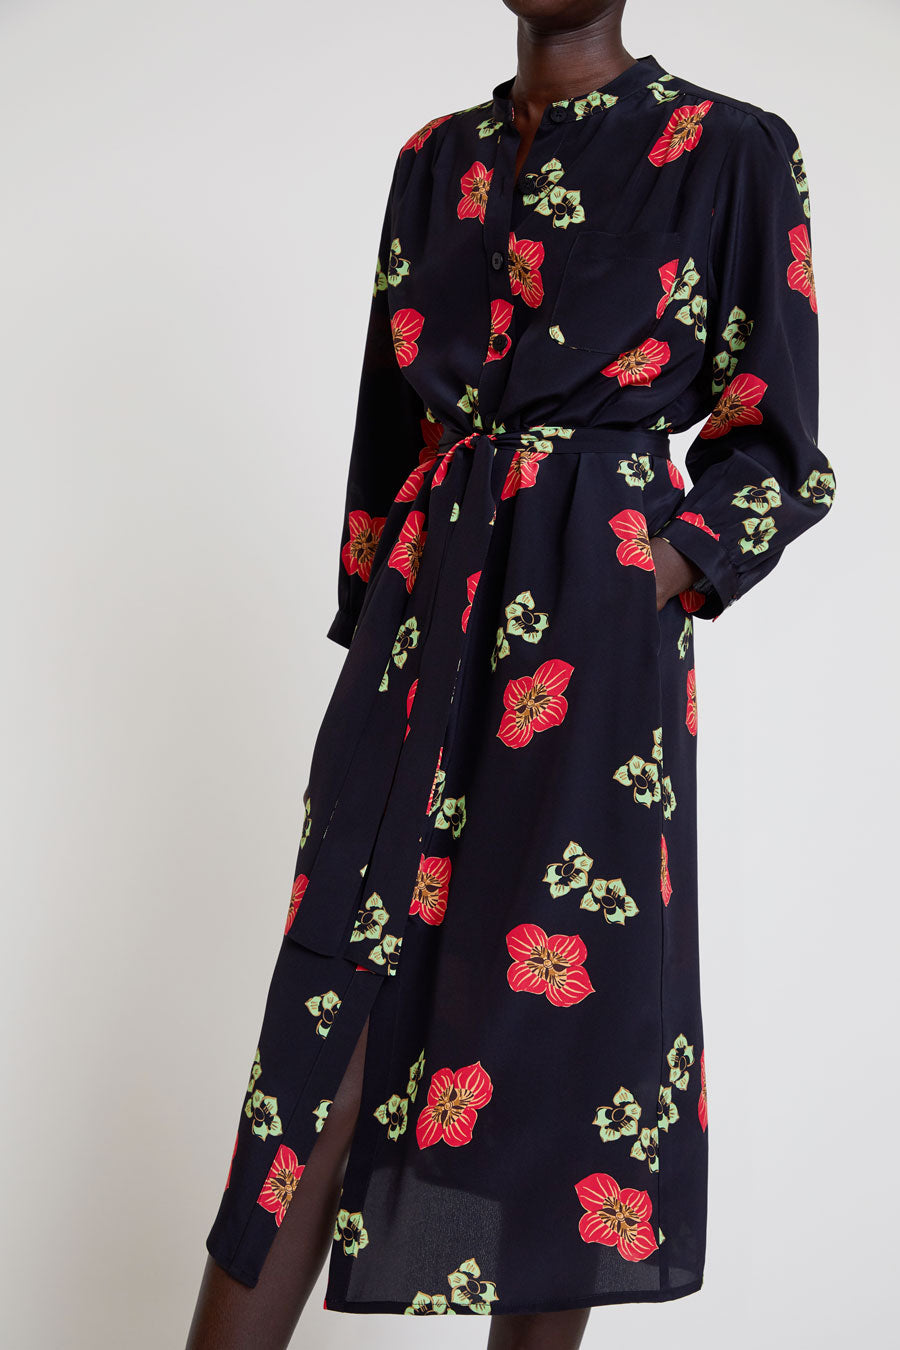 No.6 Elena Shirt Dress in Black and Red Amalfi